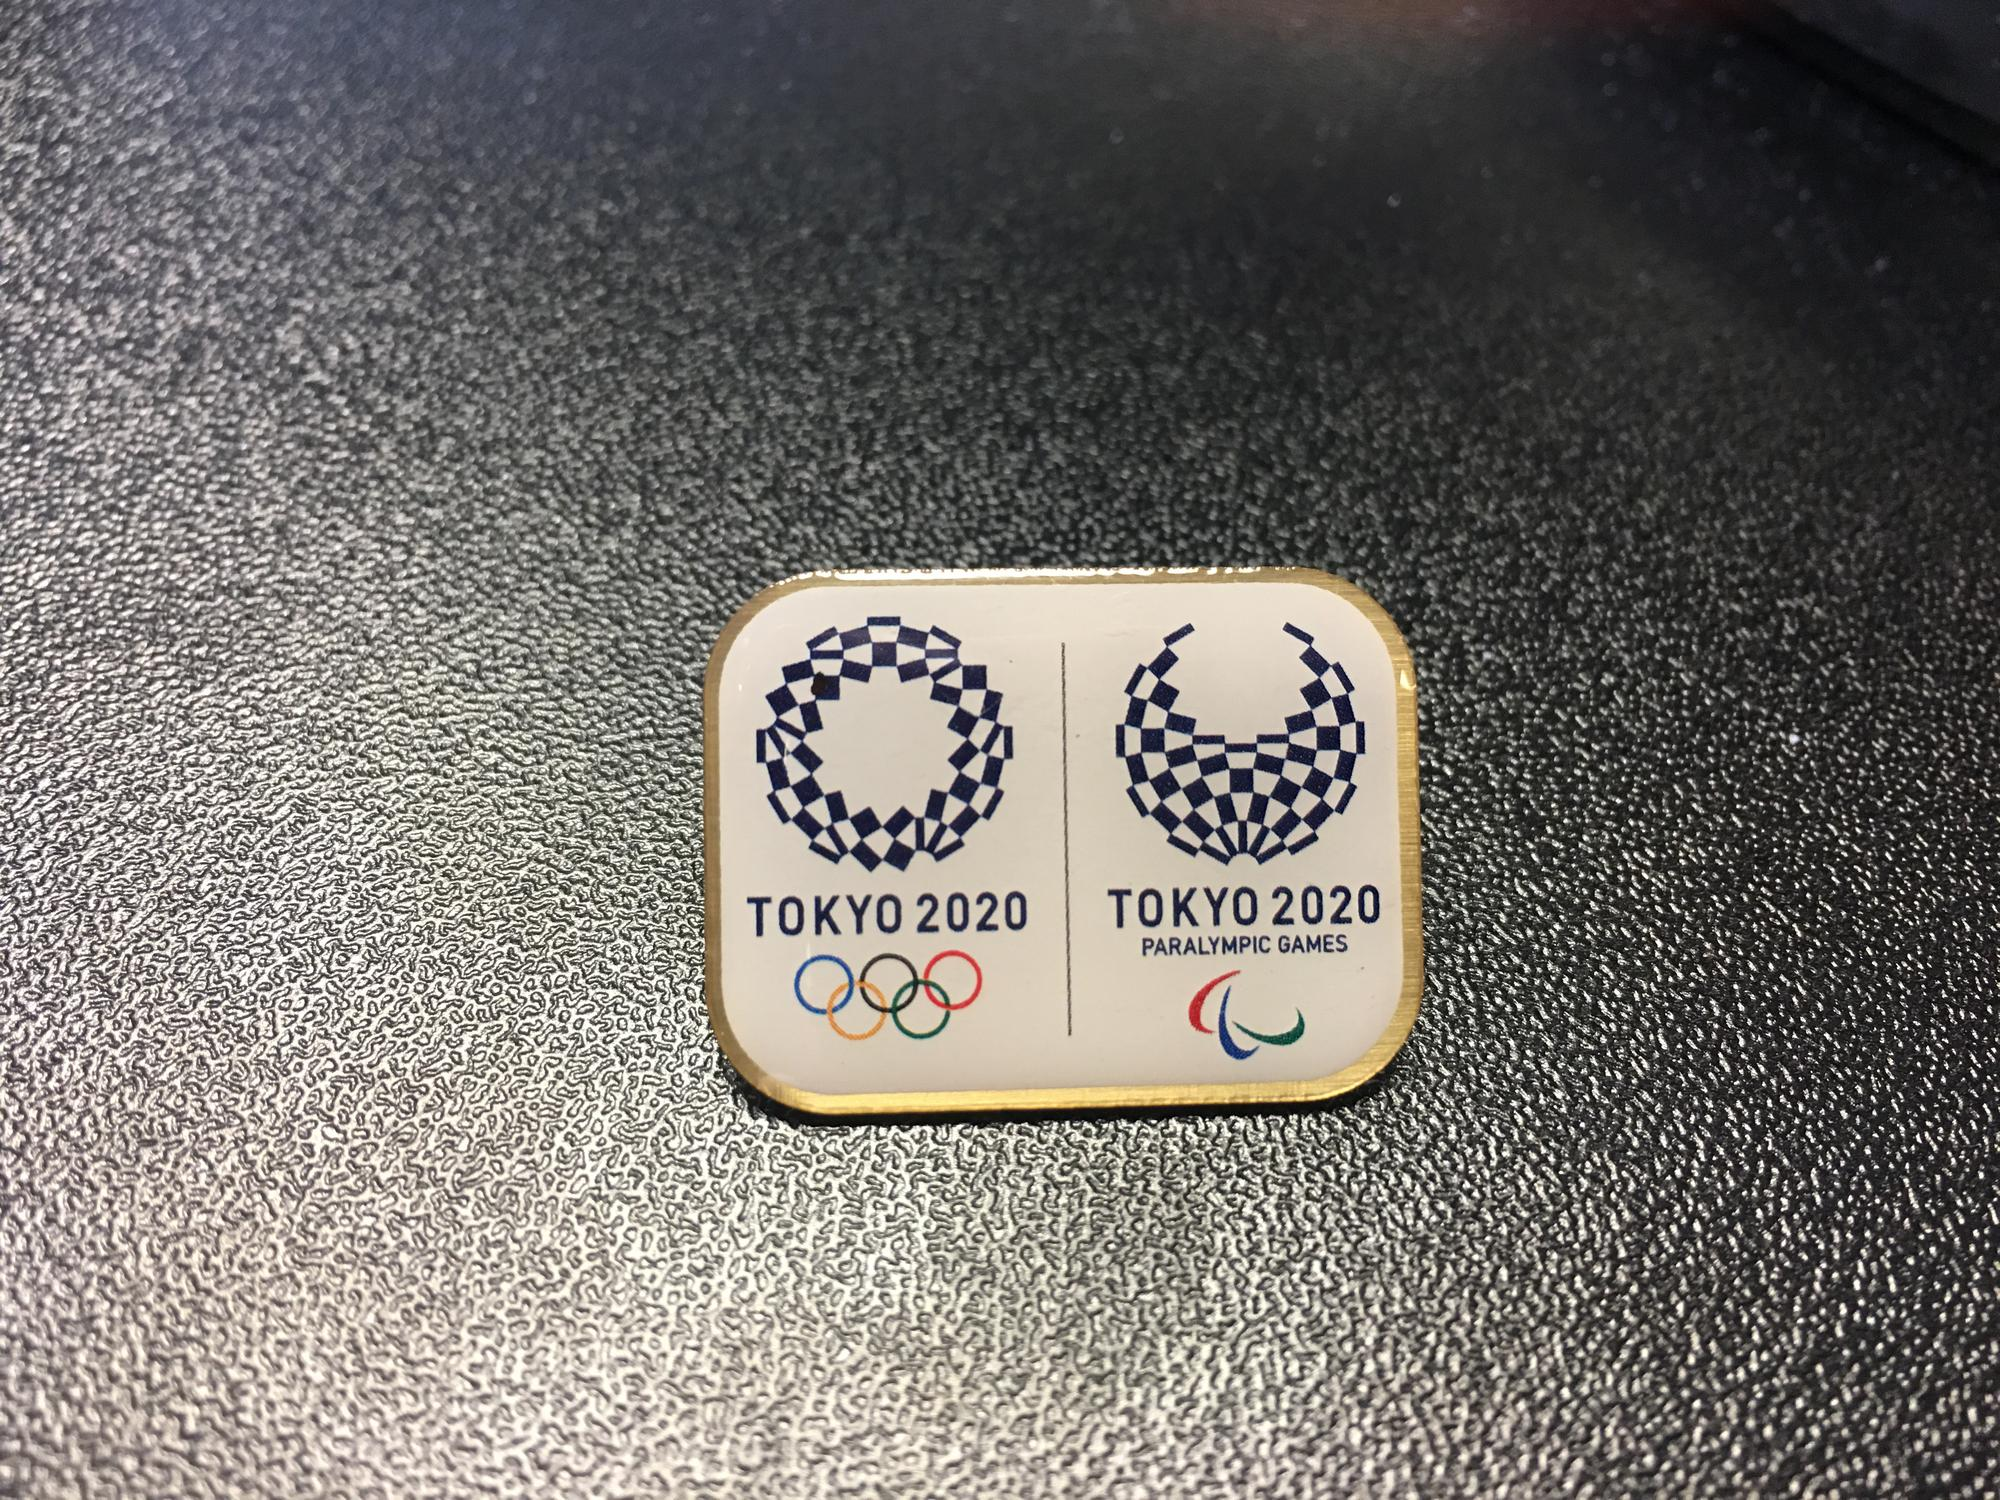 Tokyo 2020 Olympic and Paralympic Games Bid Pin (Post)